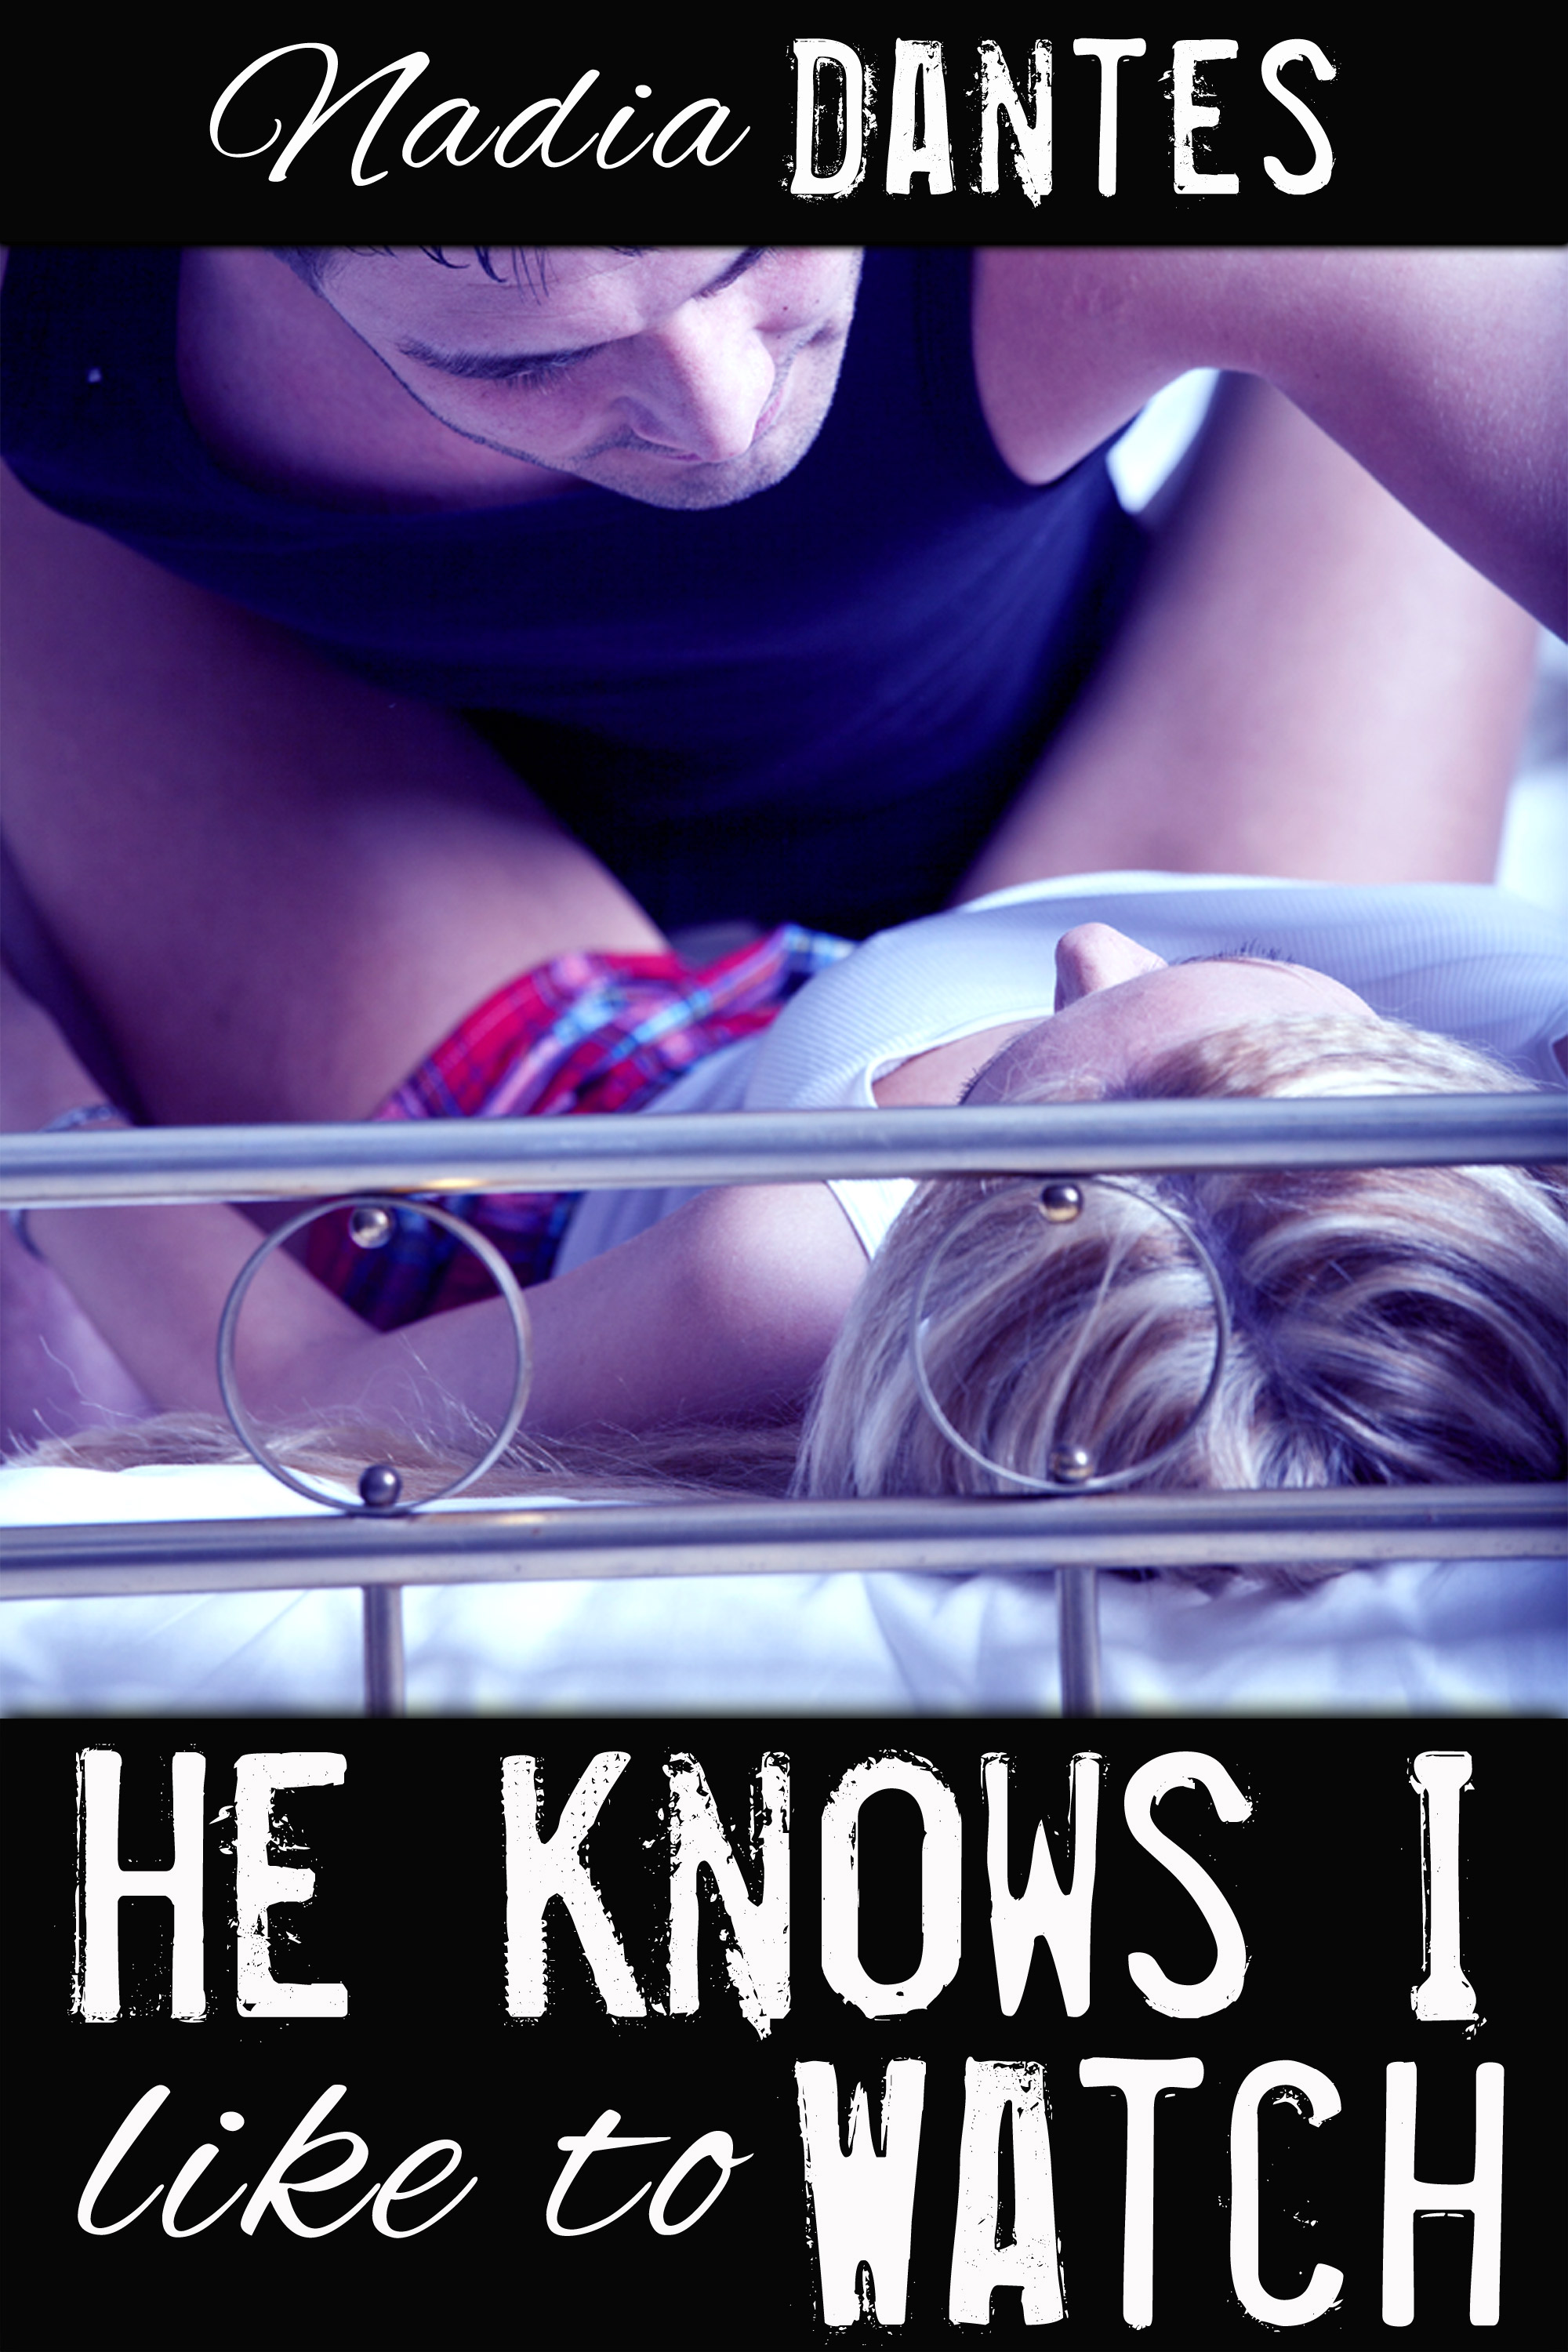 He knows i like to watch (he knows #1) (taboo pi erotica)